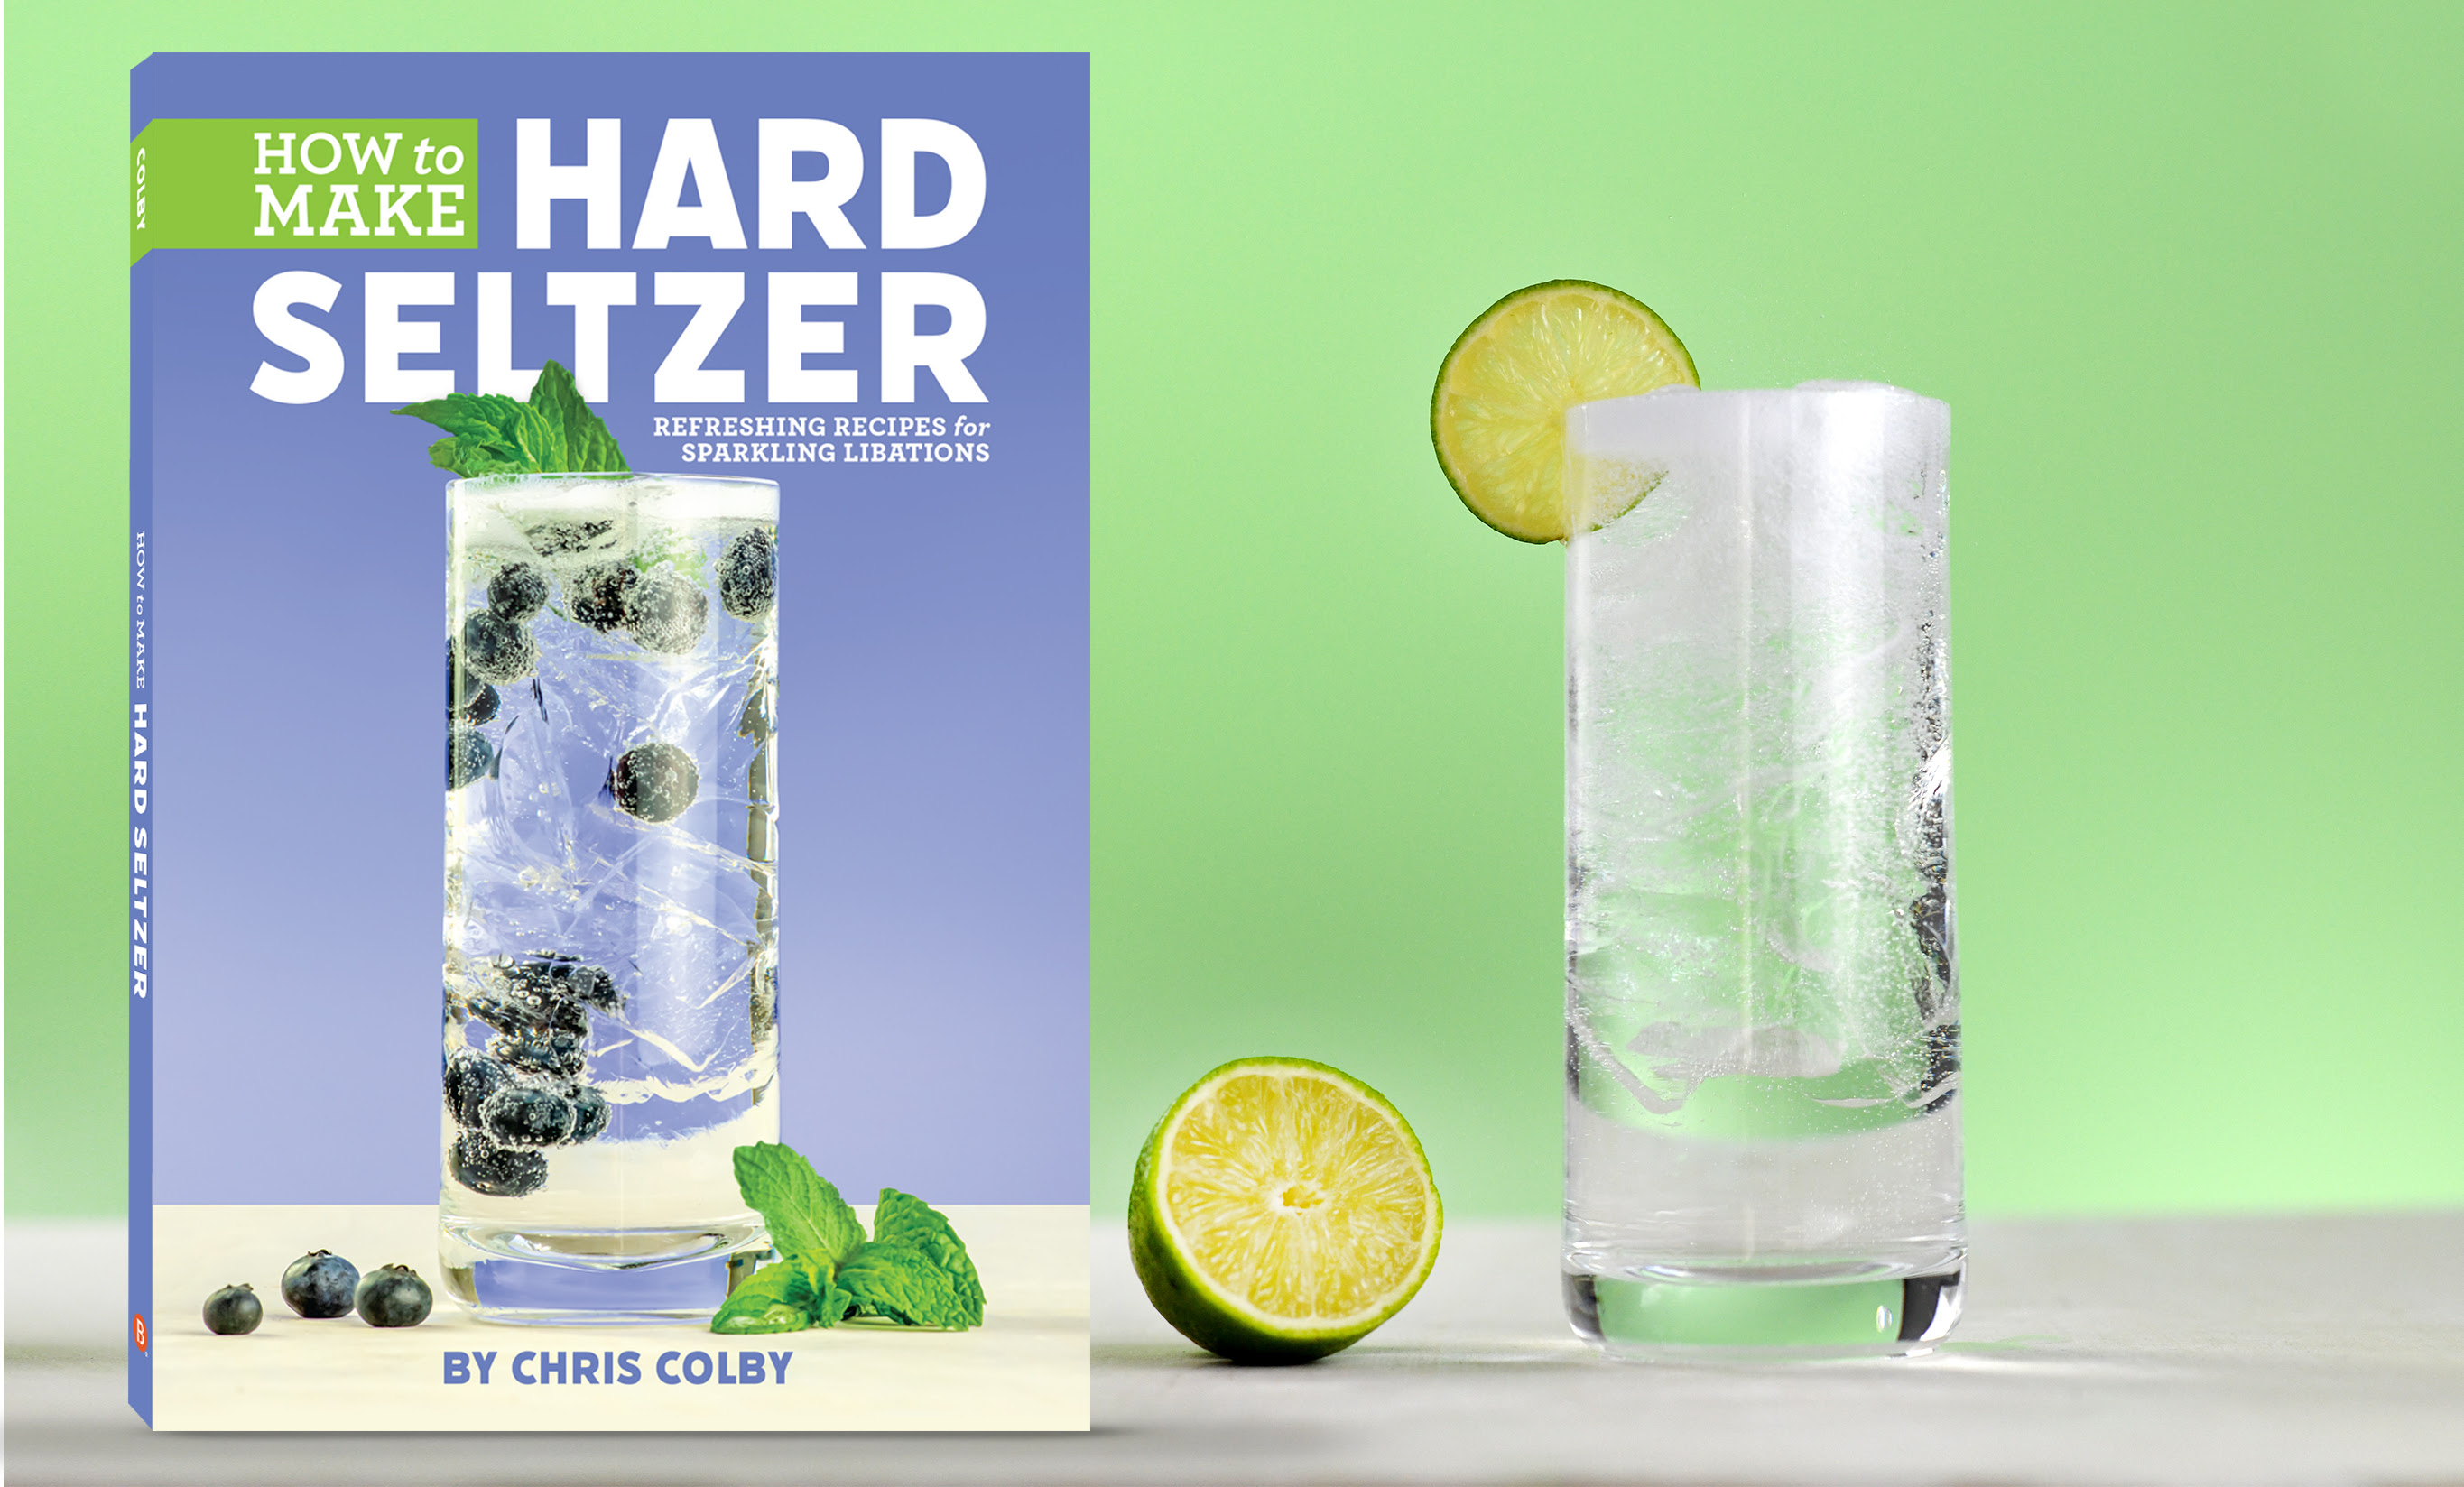 How to Make Hard Seltzer by Chris Colby